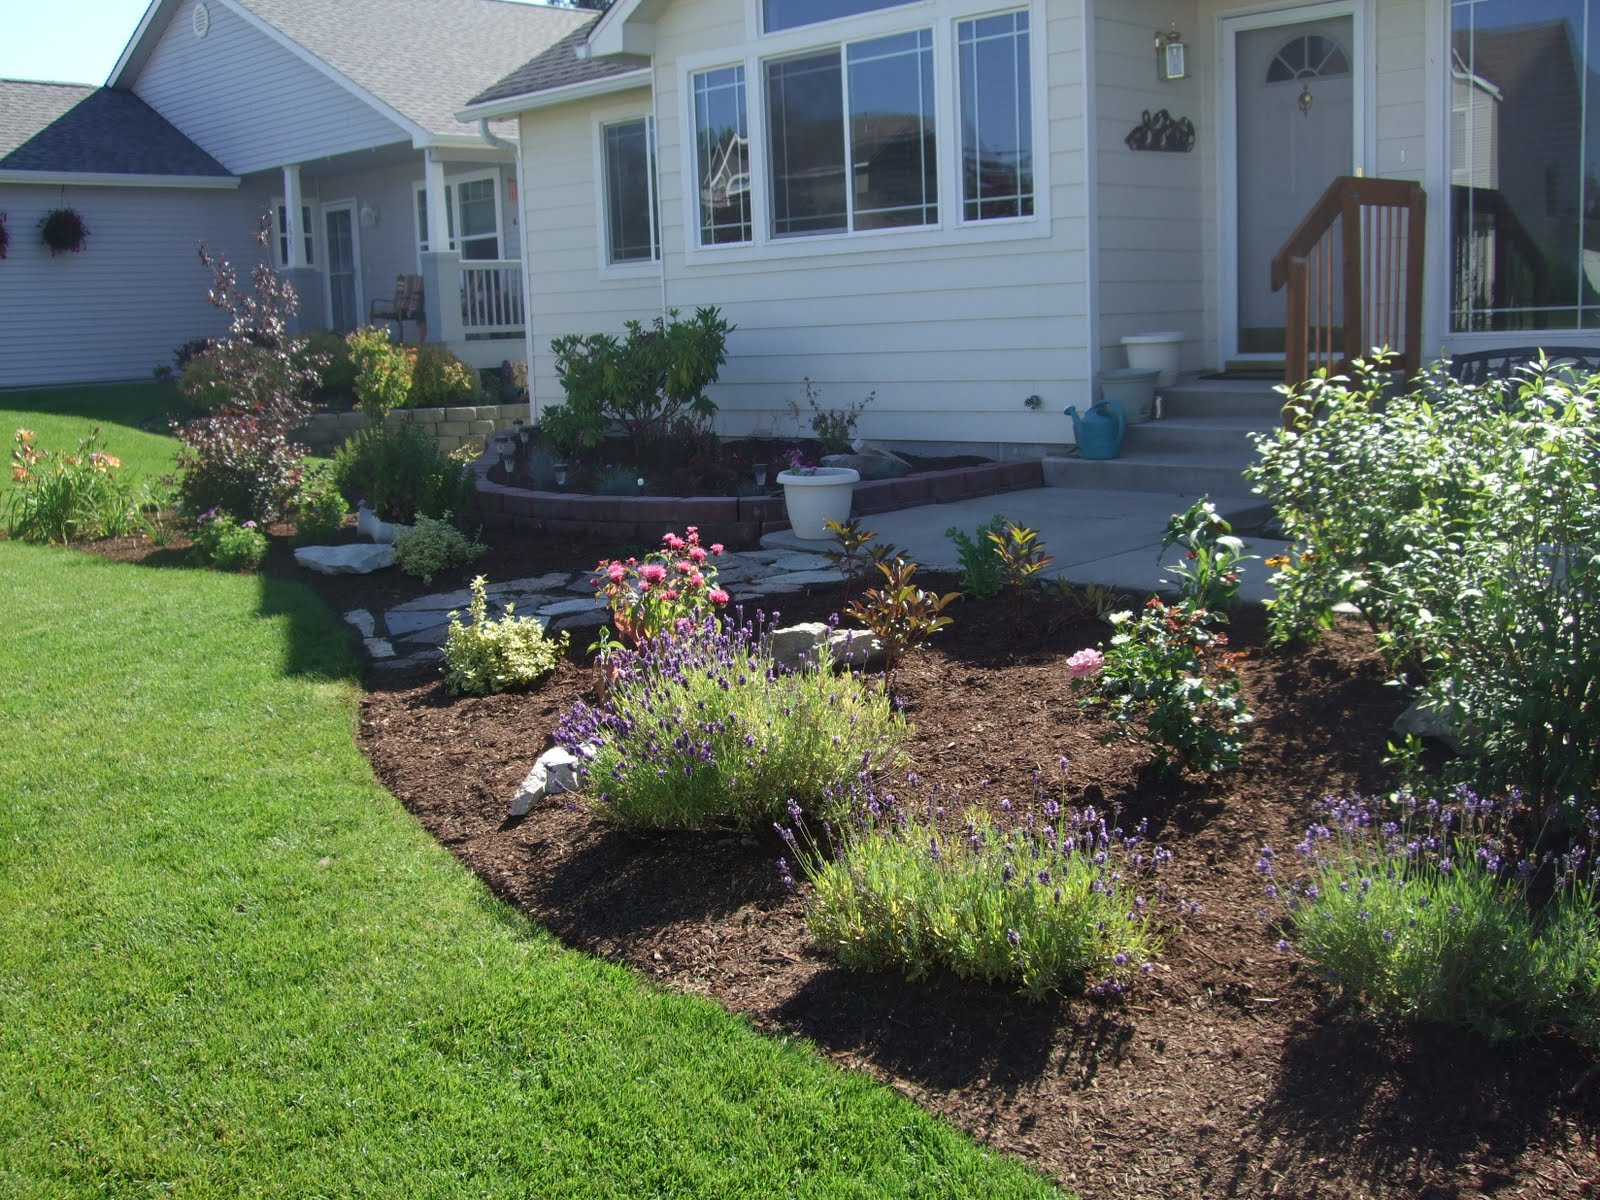 The folks at home front yard landscaping for Home front garden ideas